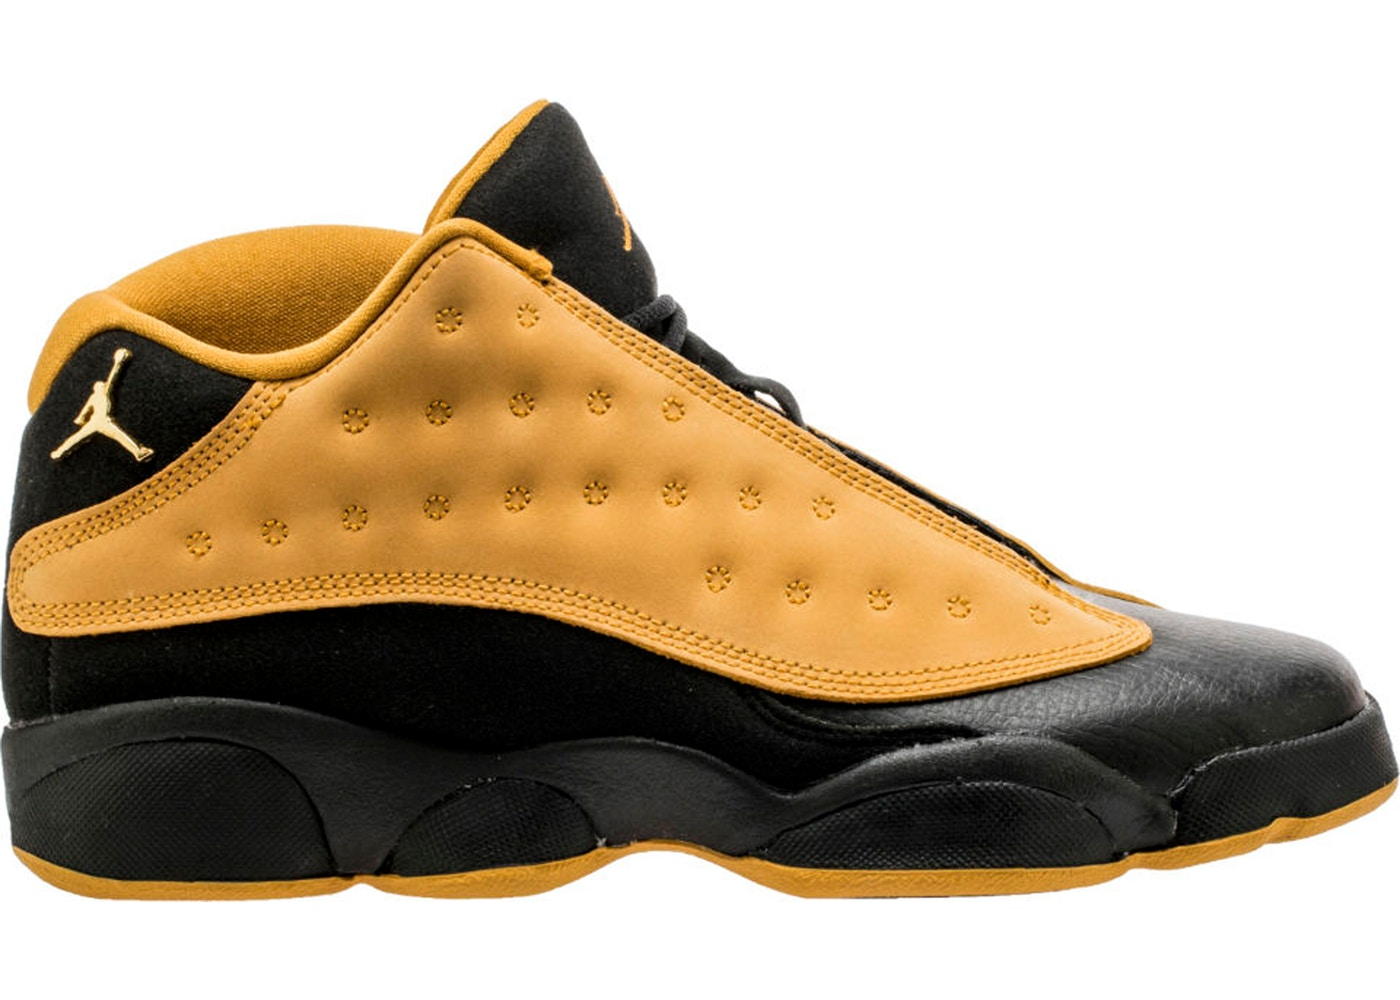 6f03d5ac8a5 Sell. or Ask. Size: 7Y. View All Bids. Jordan 13 Retro Low Chutney ...